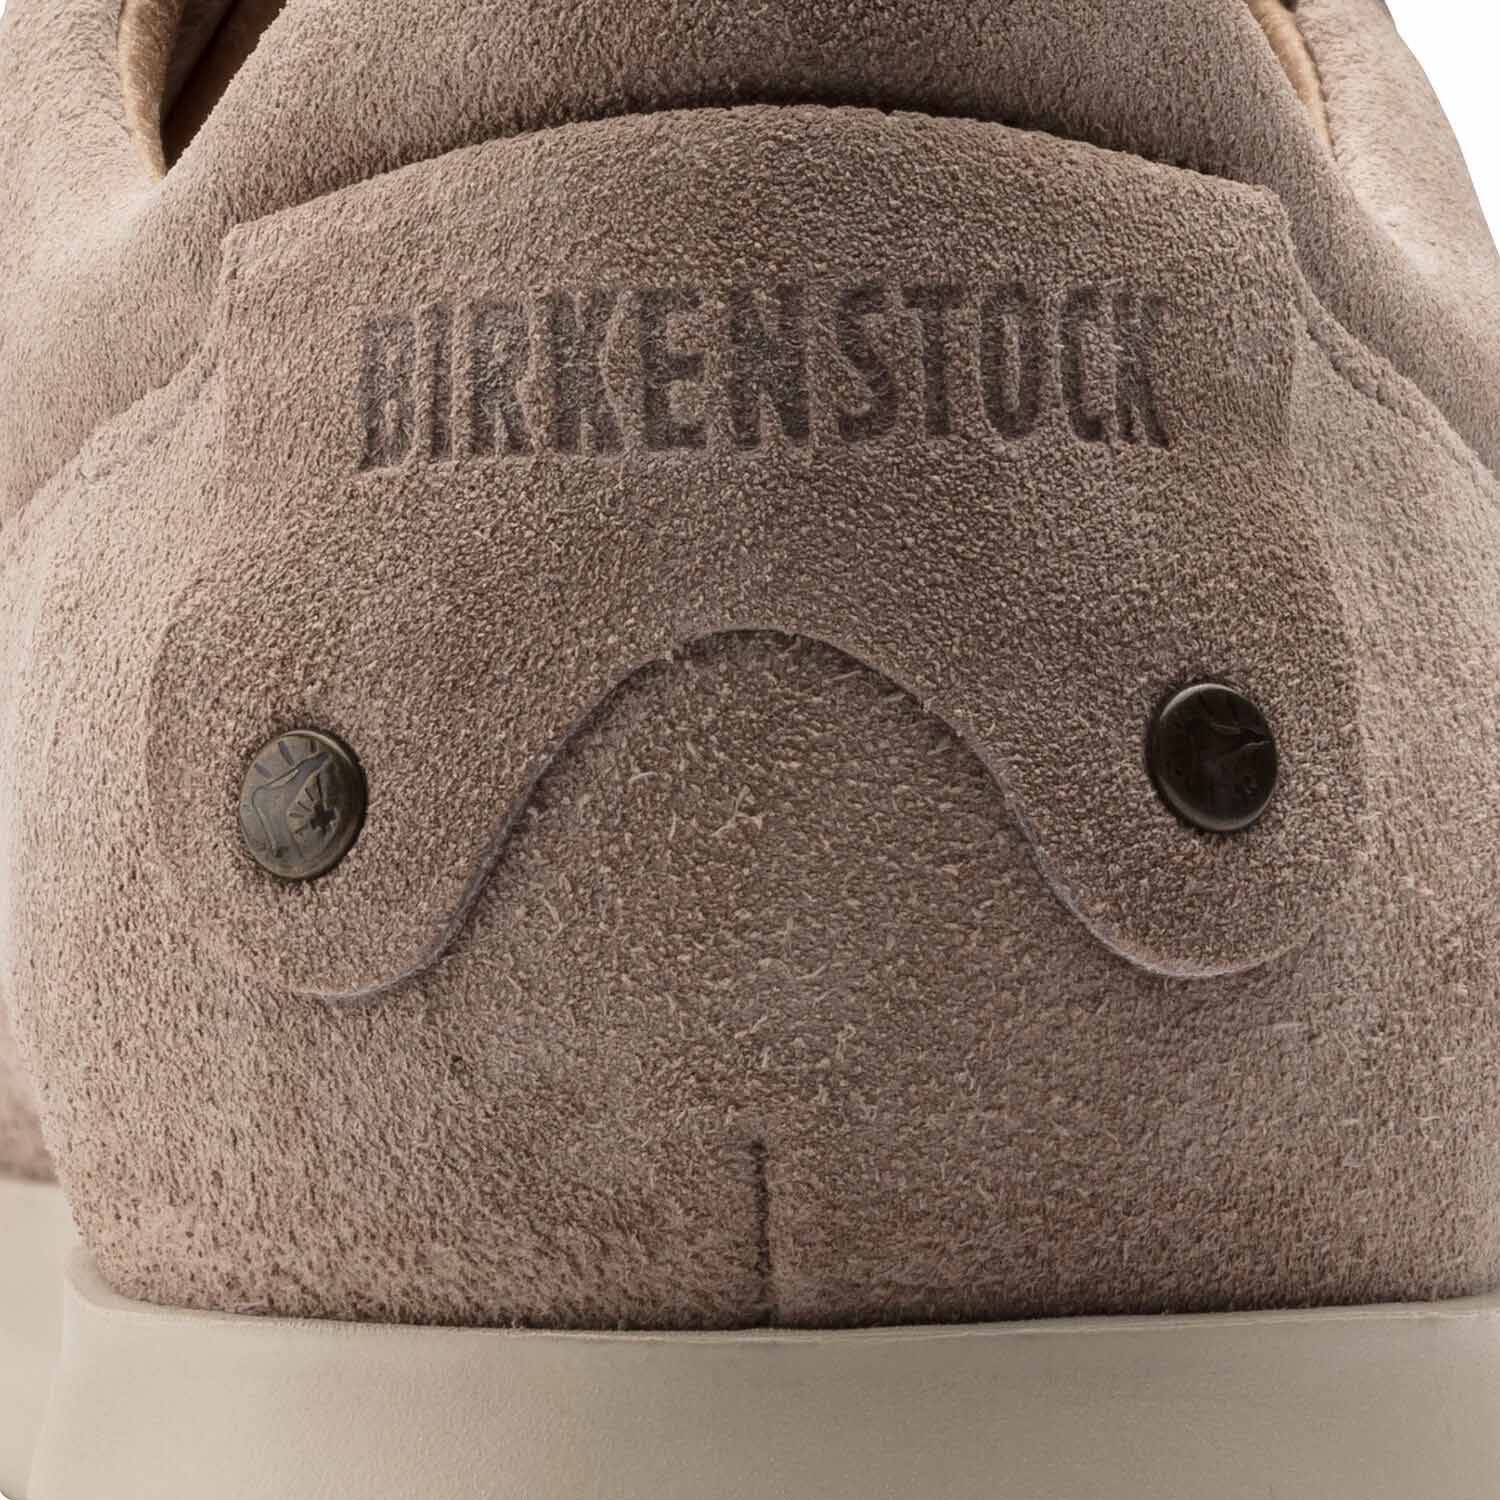 Birkenstock Cincinnati Women VL Taupe Regular